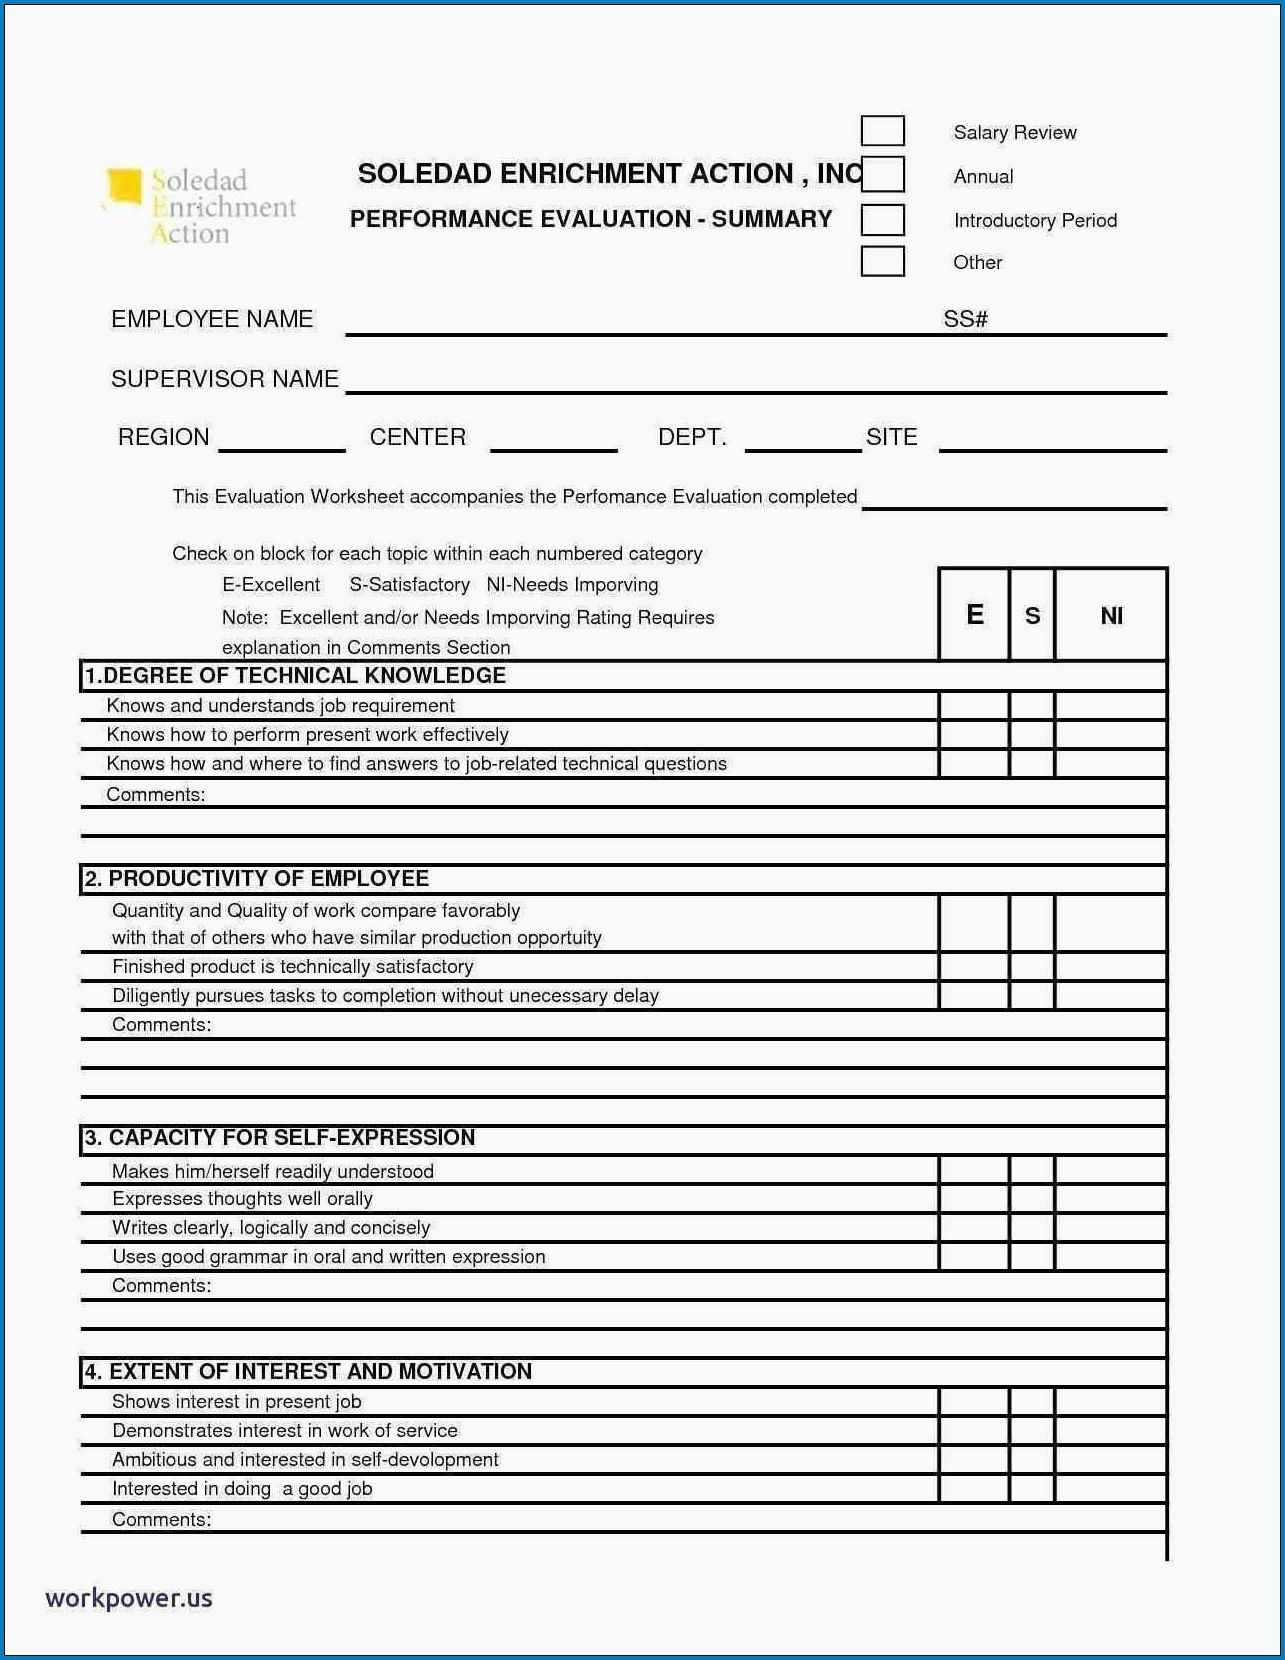 008 Remarkable Employee Performance Review Template Word Image  Microsoft DocumentFull